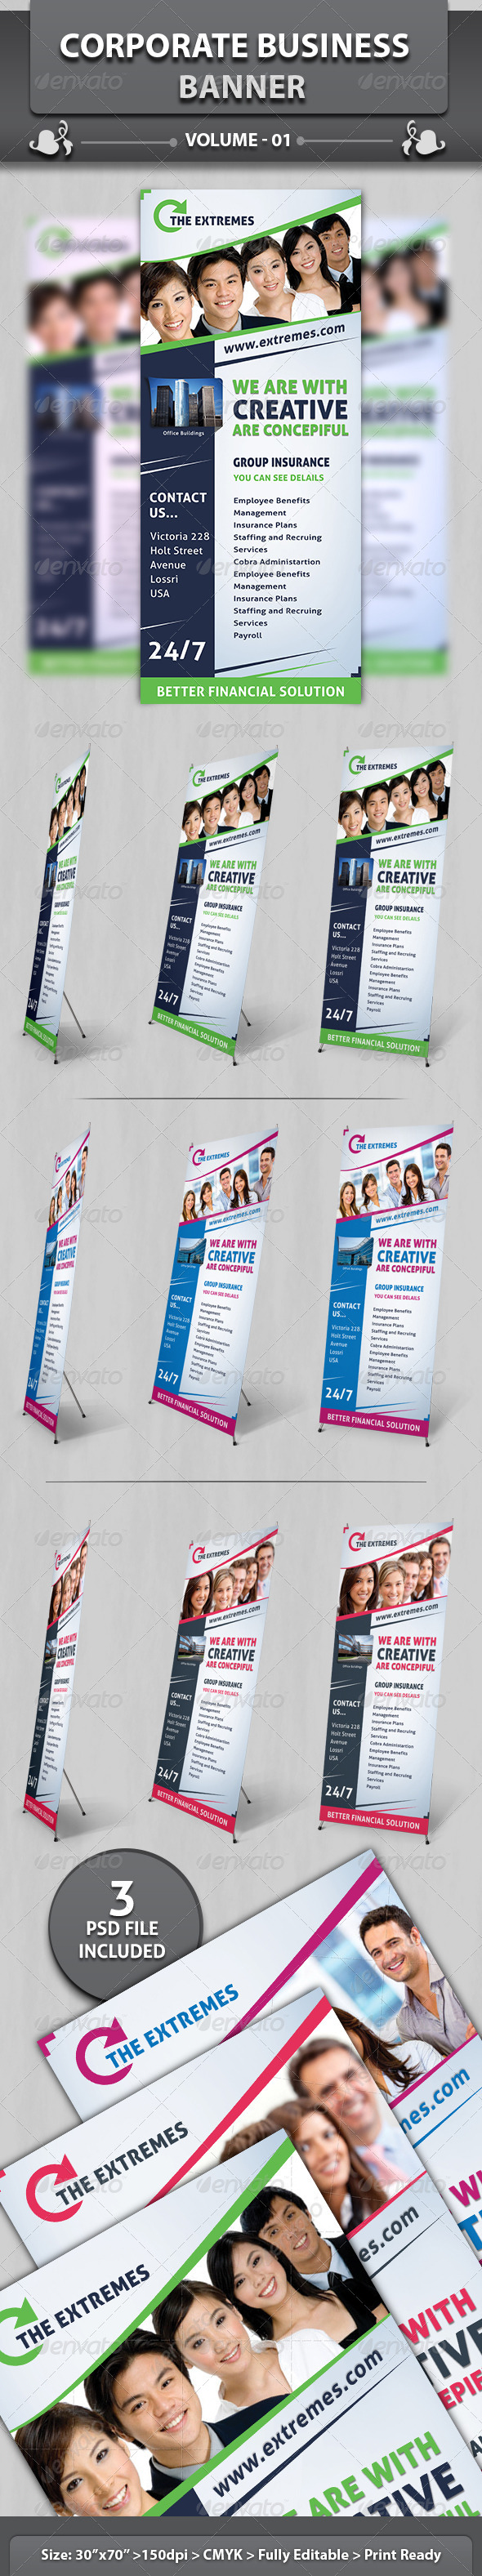 Corporate Business Banner Volume 3